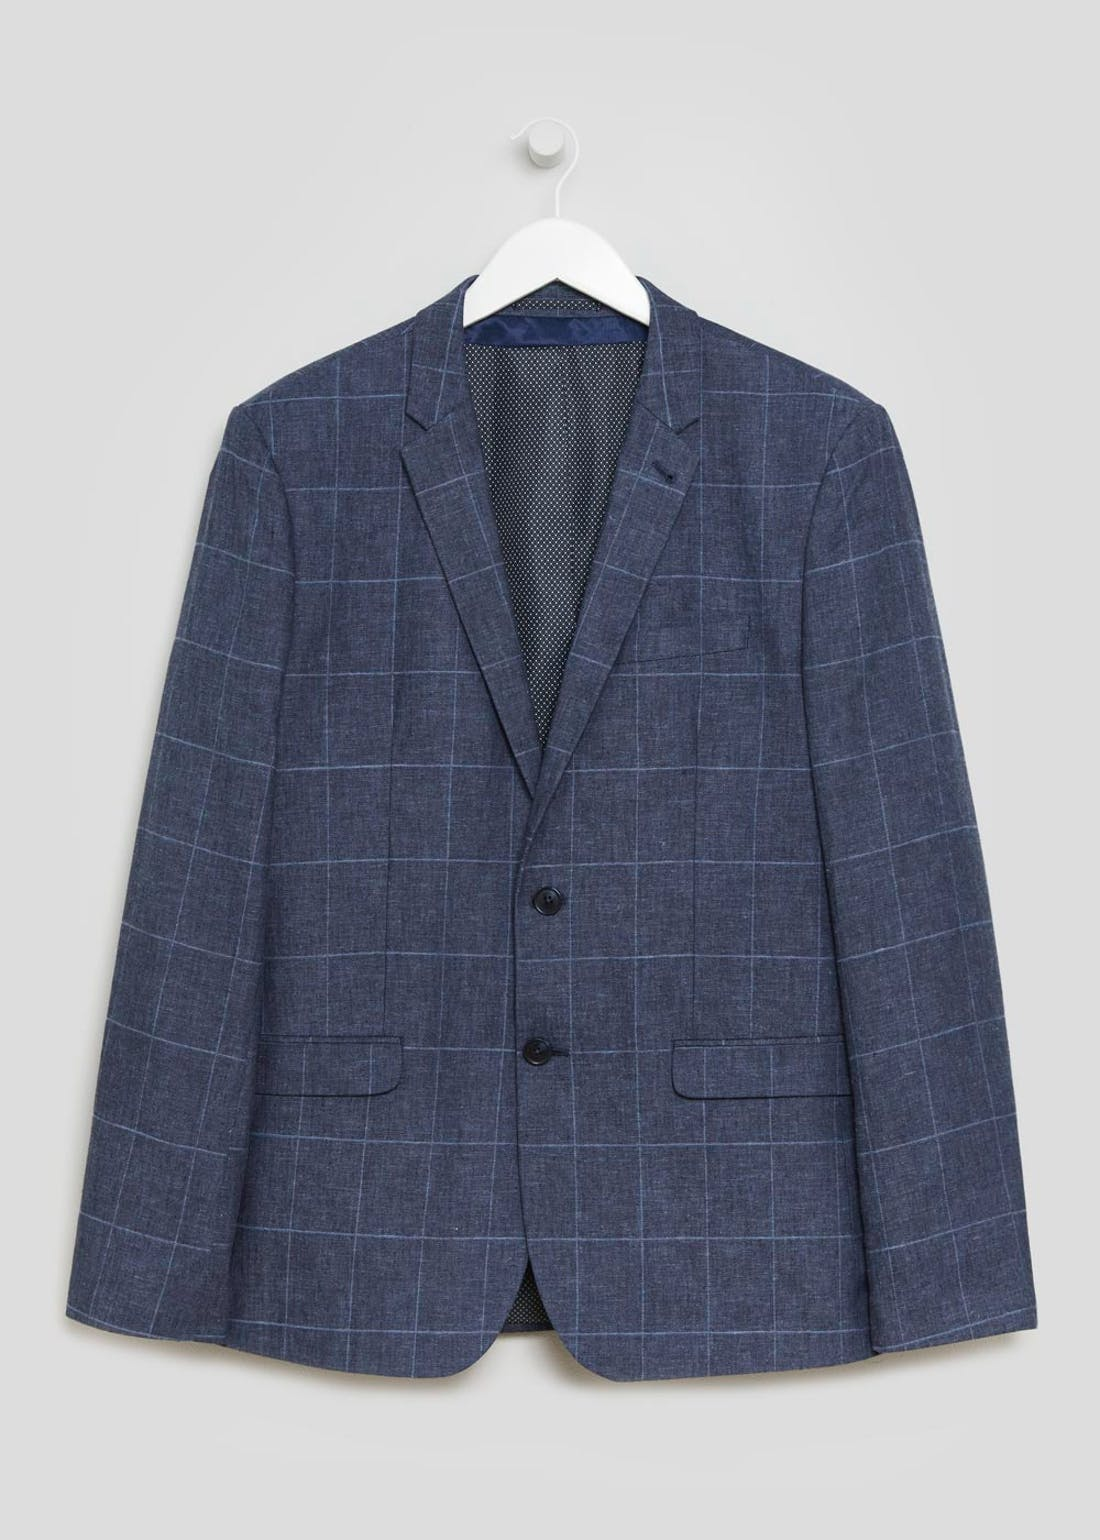 Taylor & Wright Navy Langdon Slim Fit Blazer